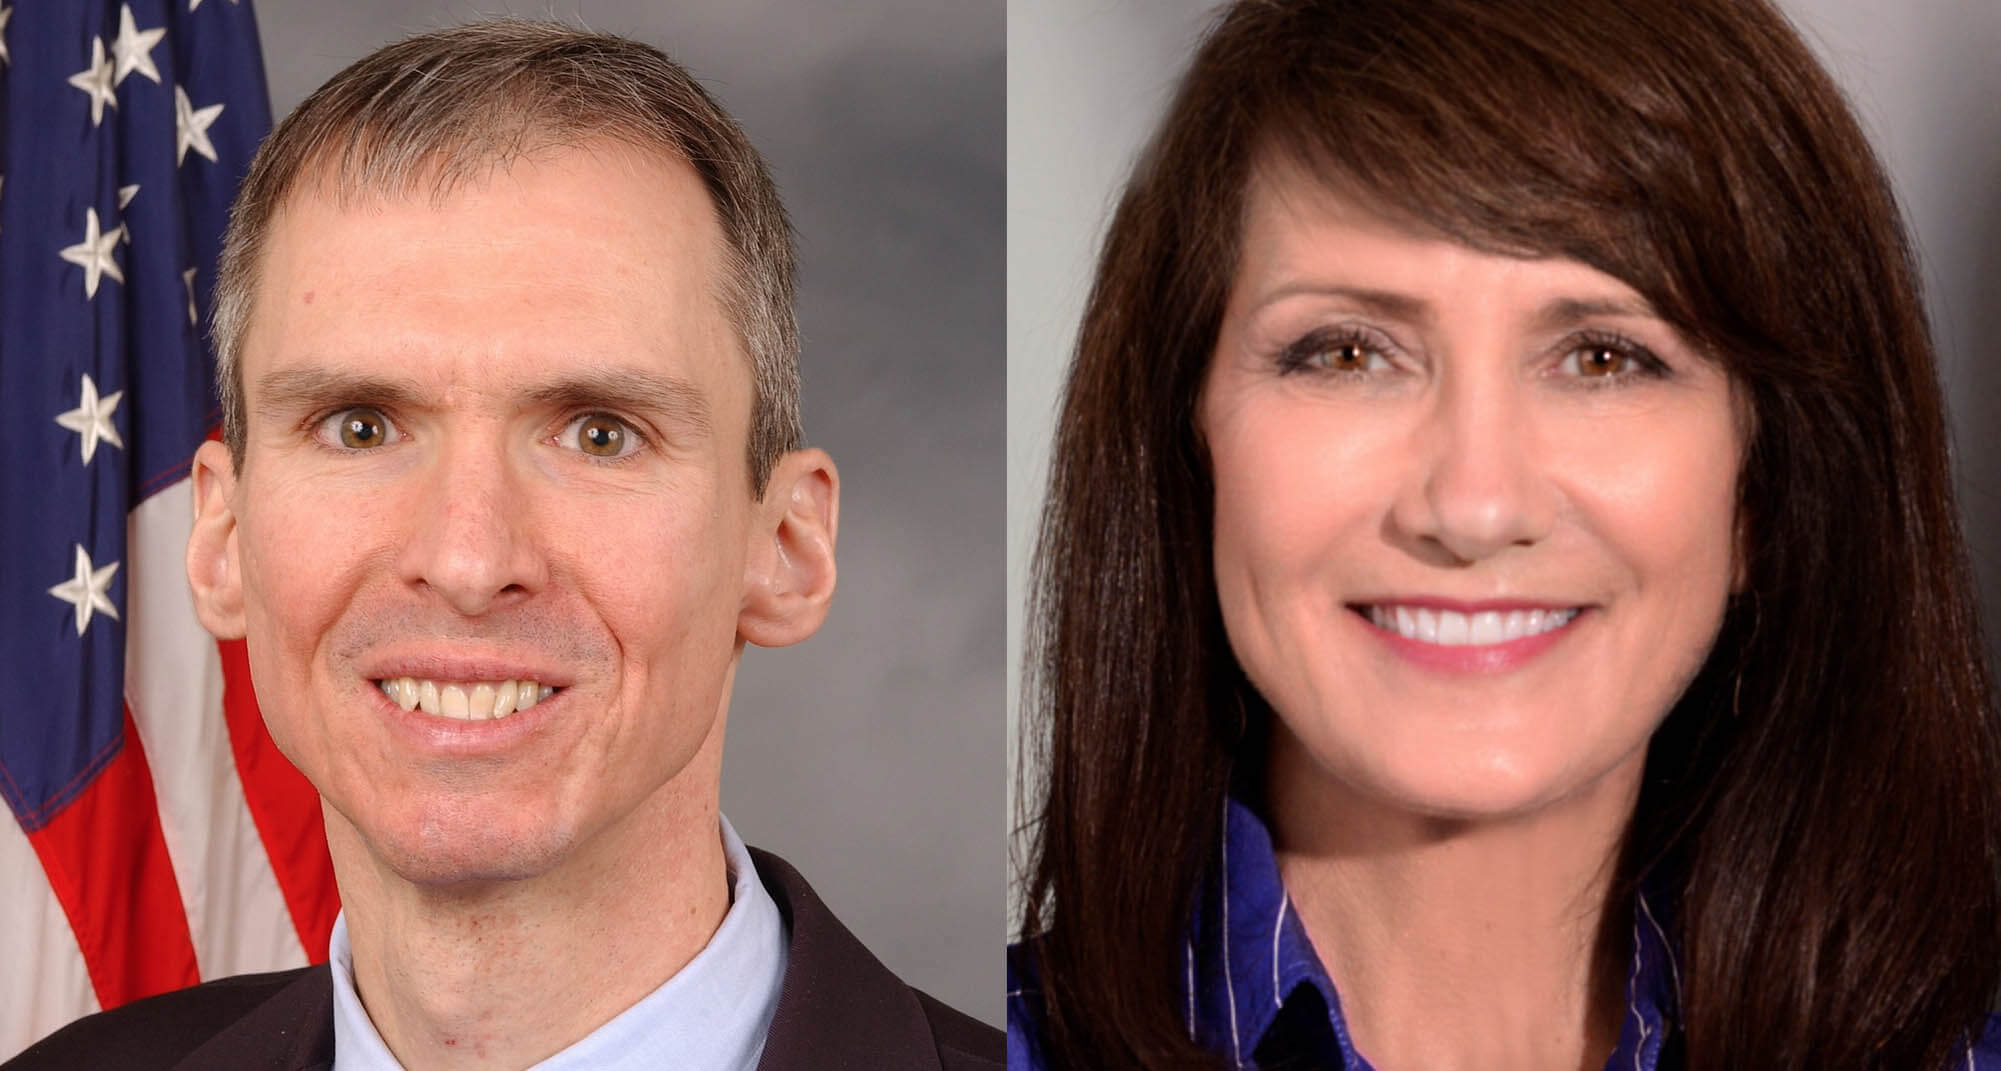 Congressman Dan Lipinski, challenger Marie Newman, faced-off in the March 20, 2018 Democratic Primary election in Illinois's 3rd Congressional District. Lipinski won by a slim margin with 50.9 percent of the vote.